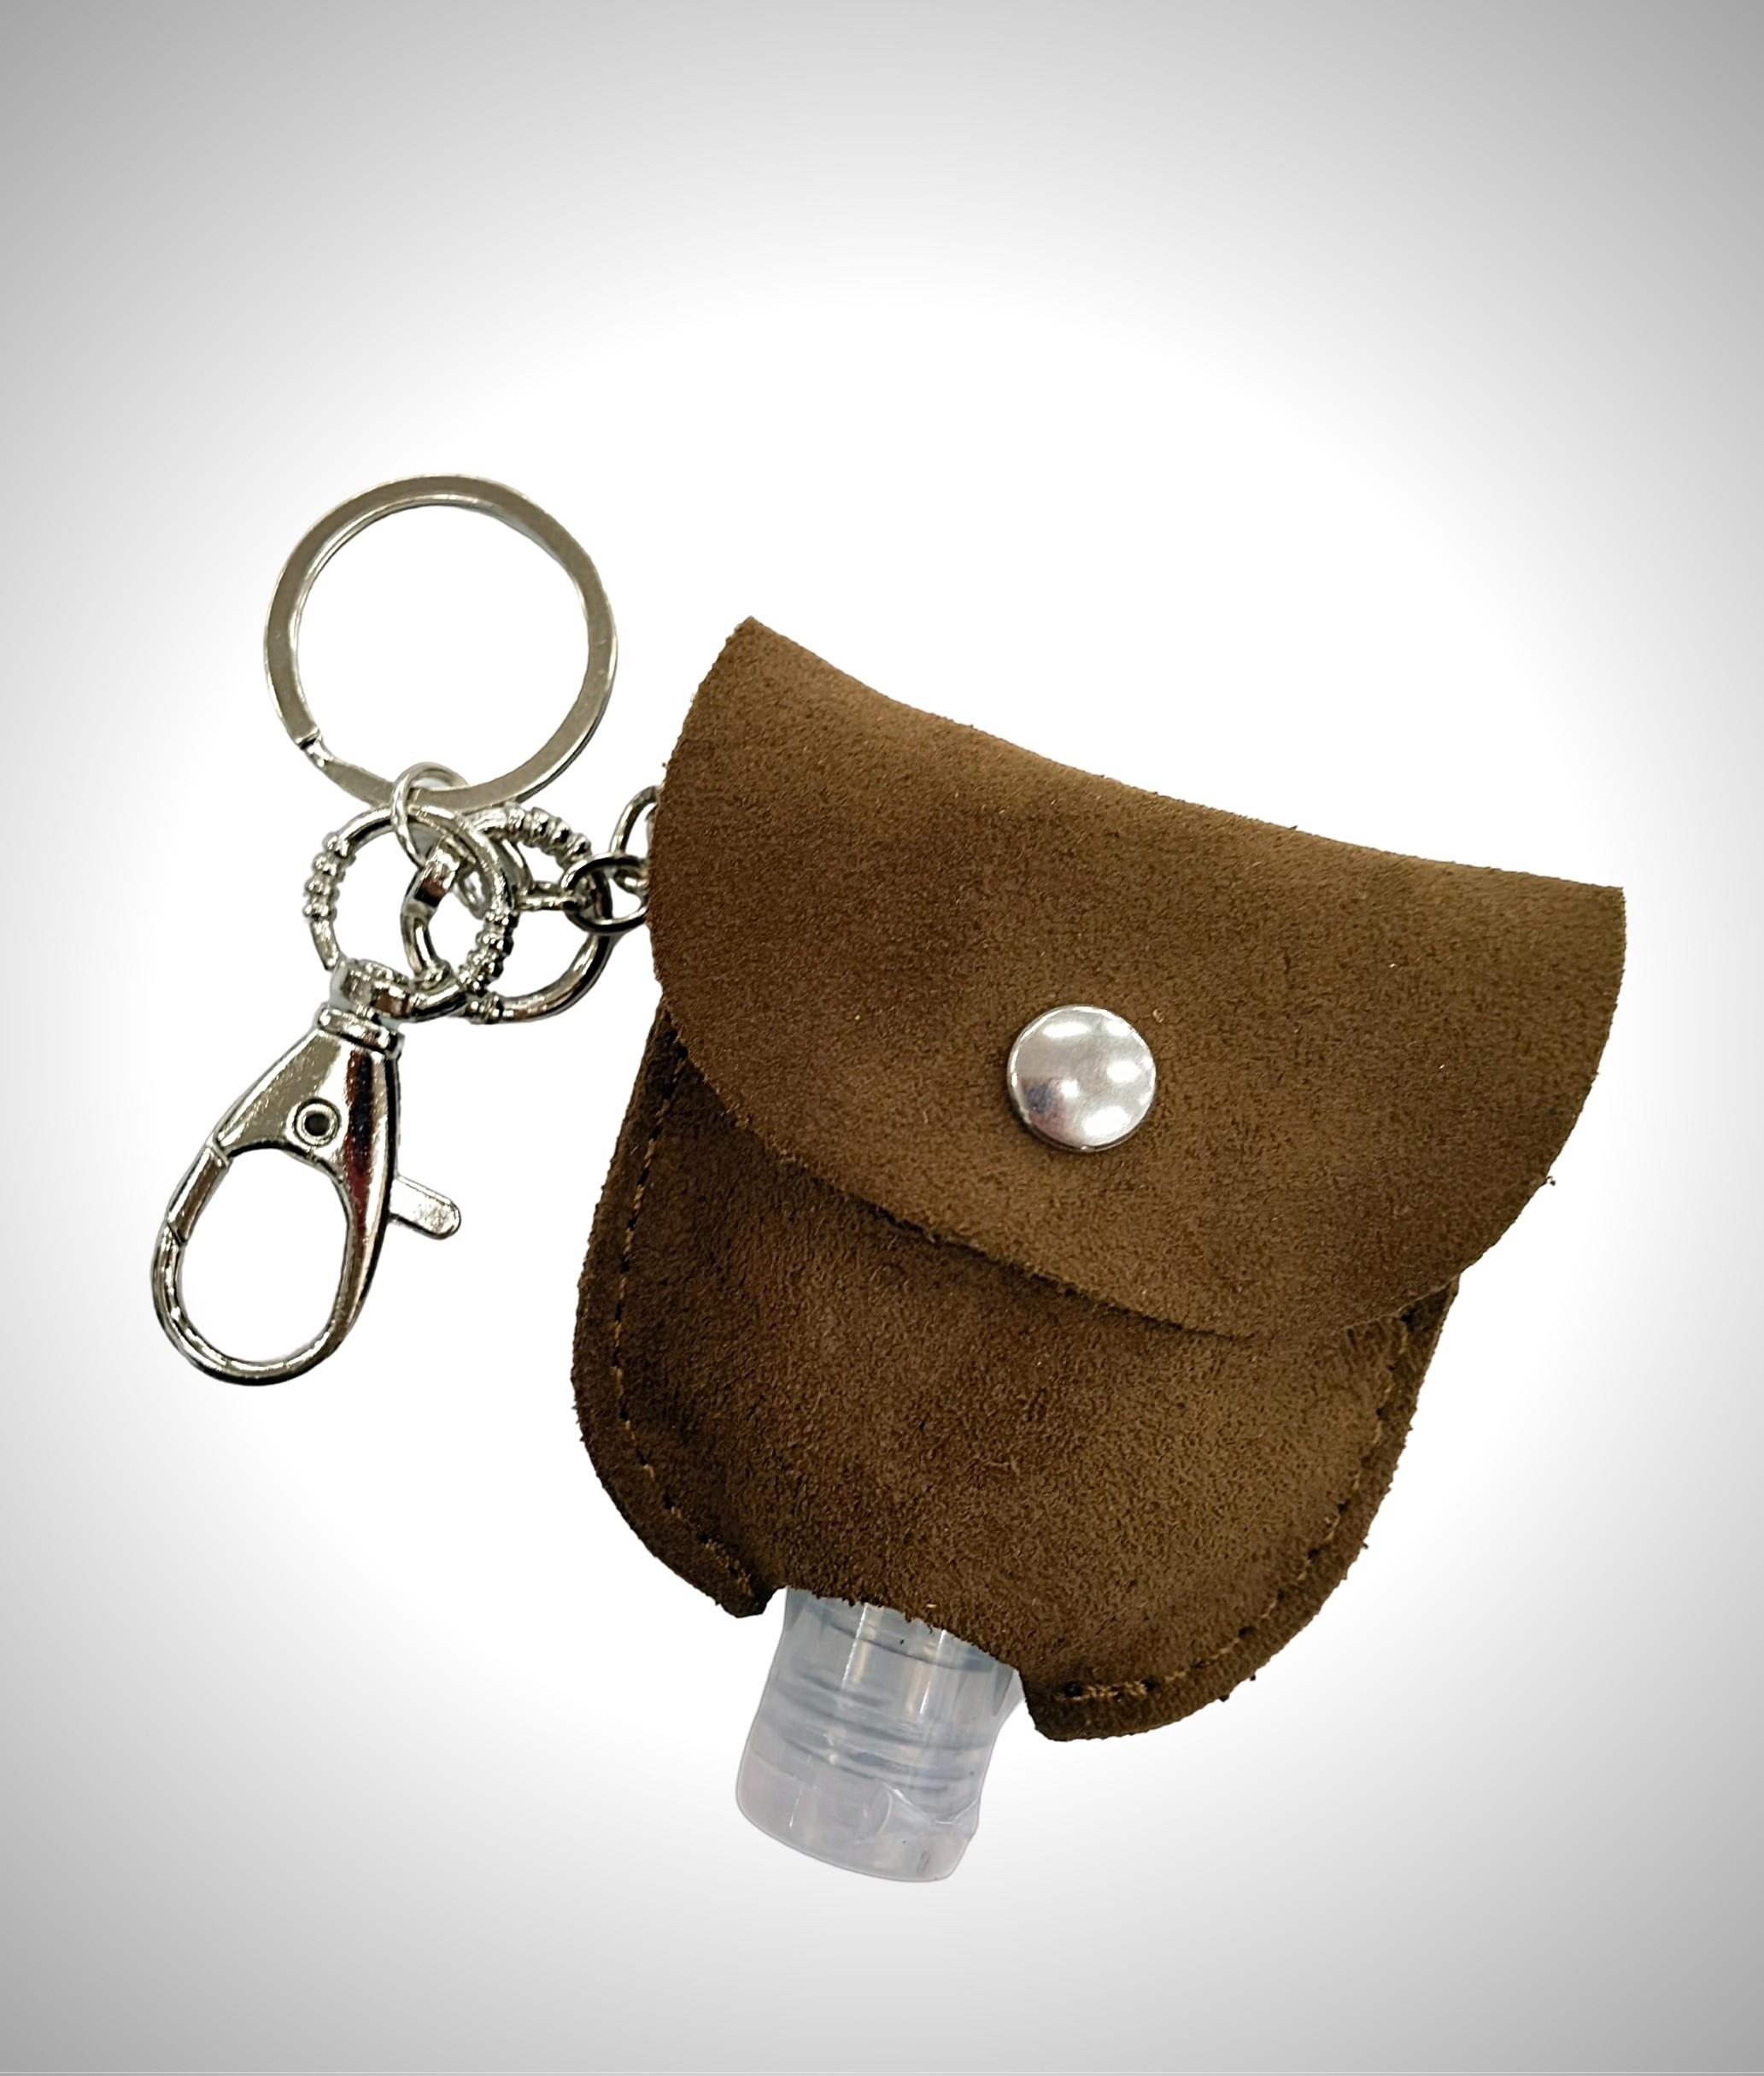 Gel-carrying leather keychain - blue